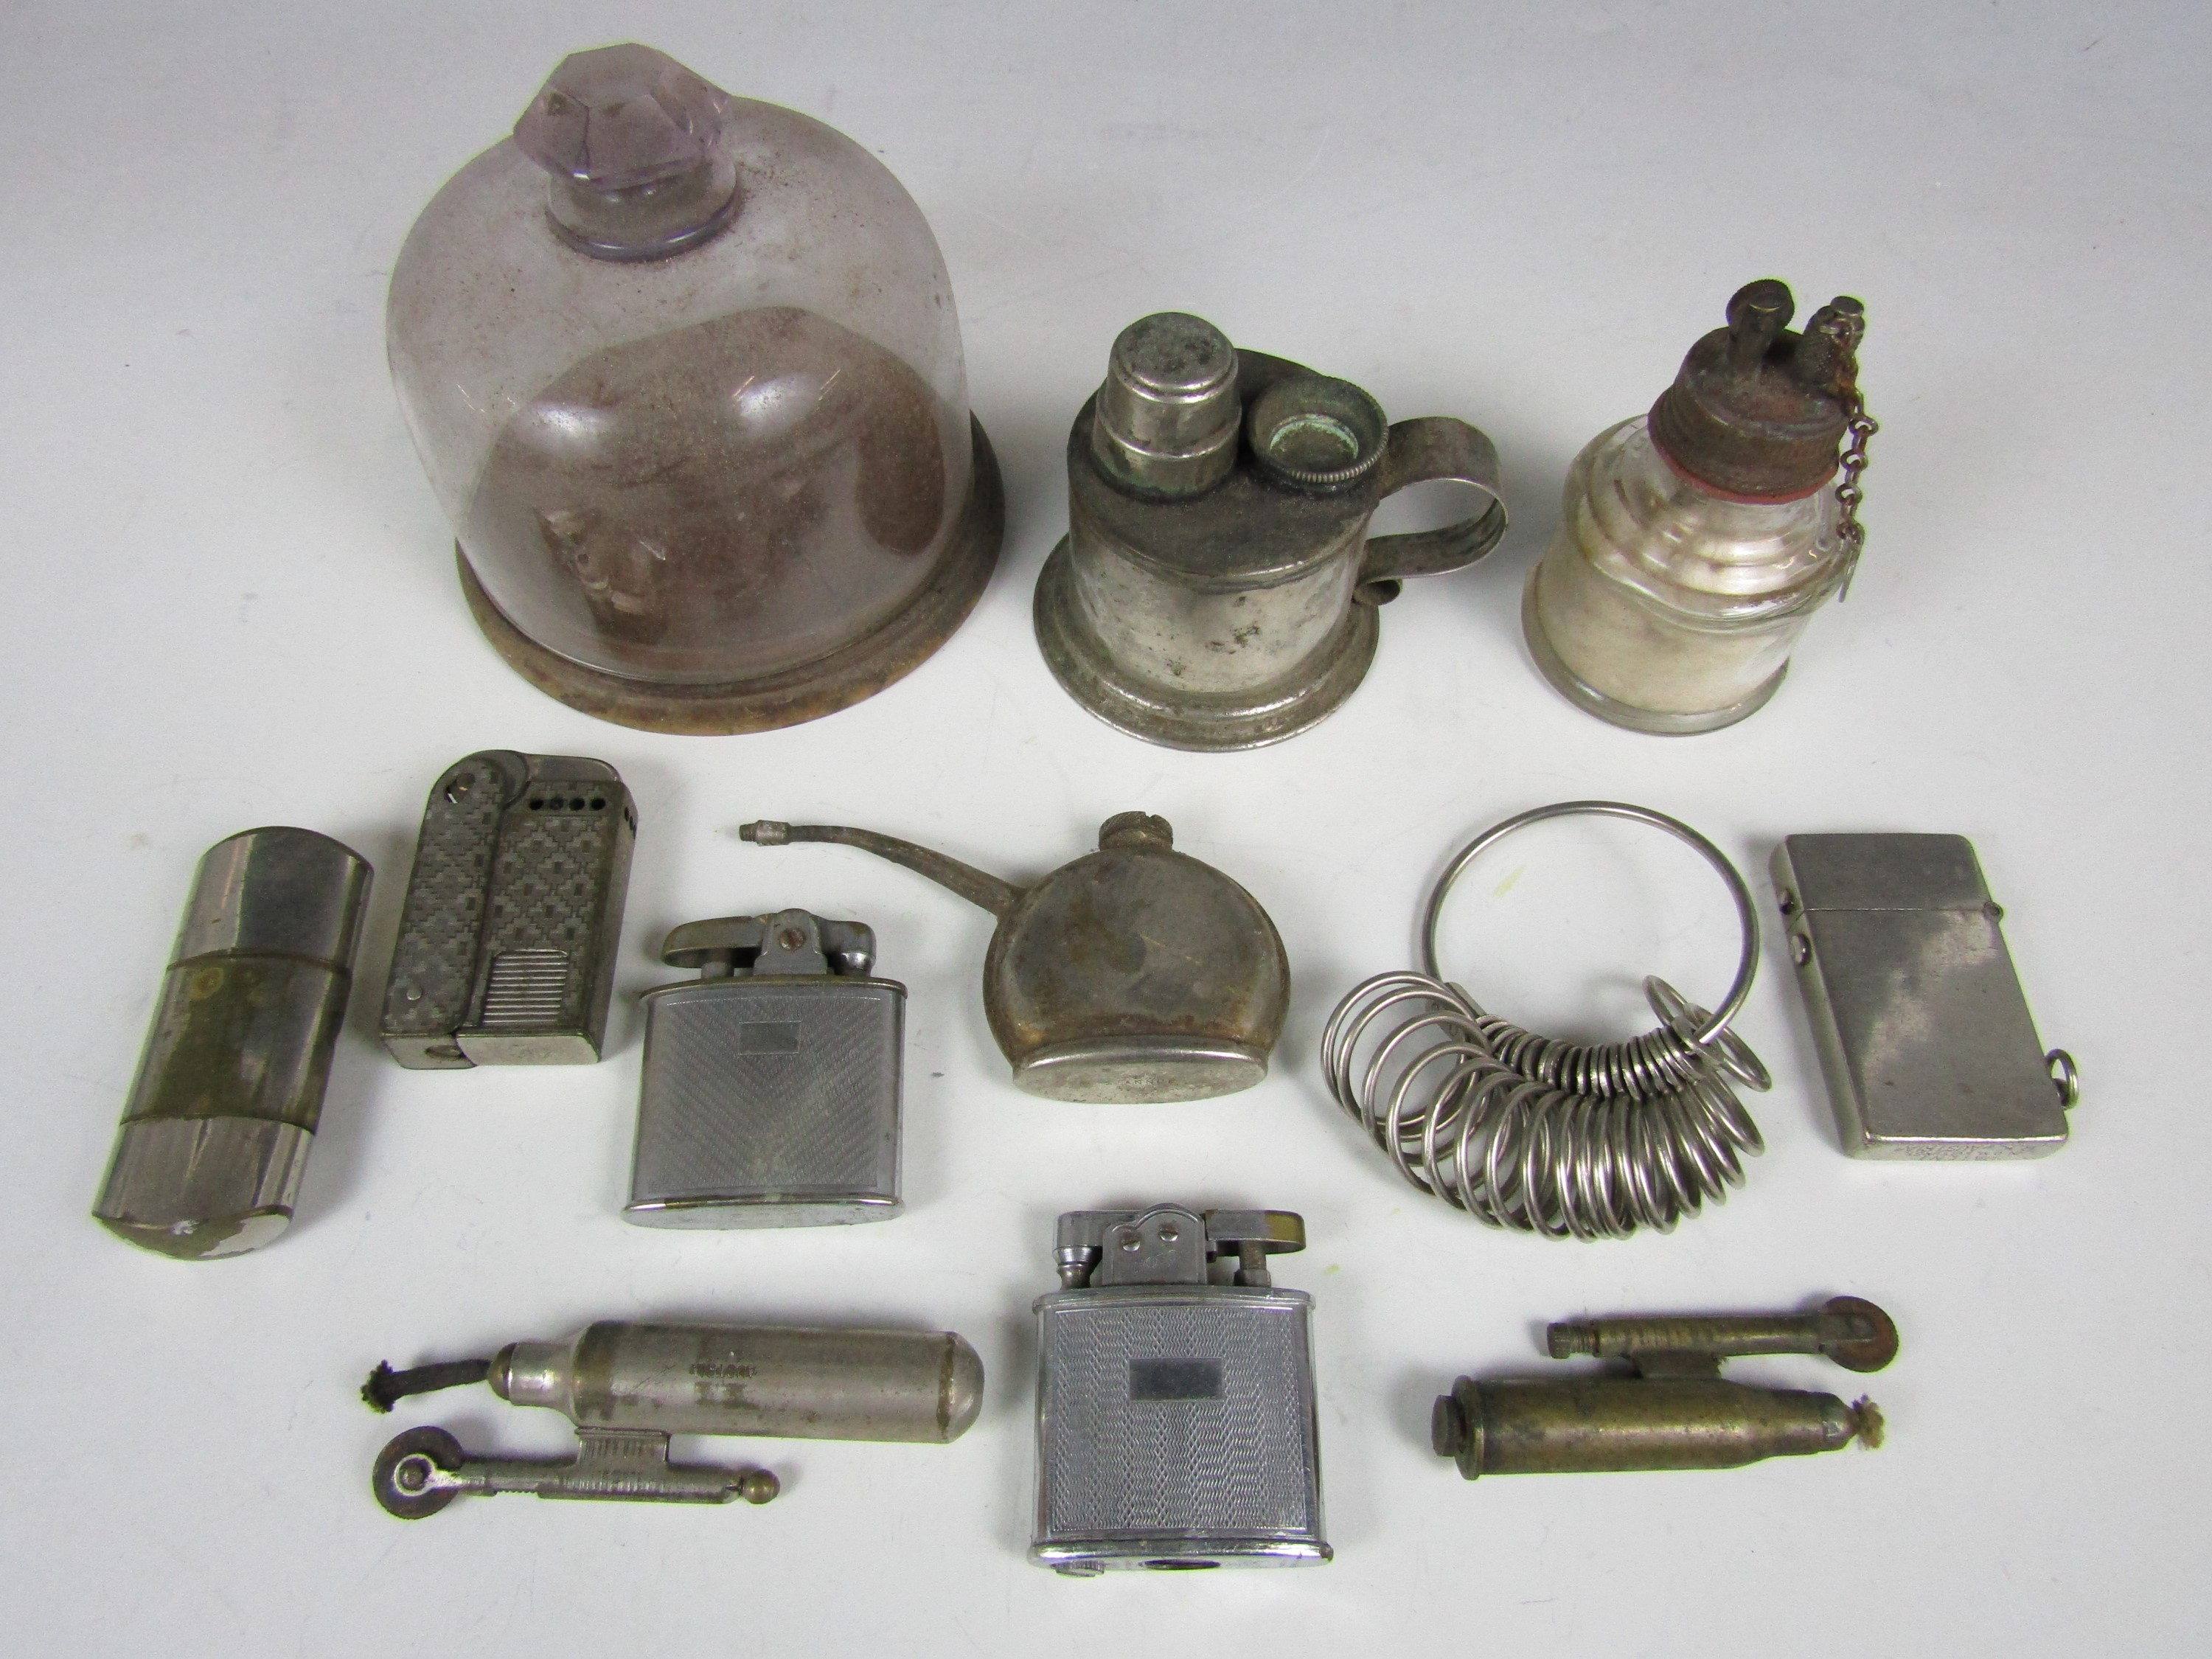 Lot 13 - Sundry collectors' items including a watchmaker's glass dome, a ring gauge and lighters including